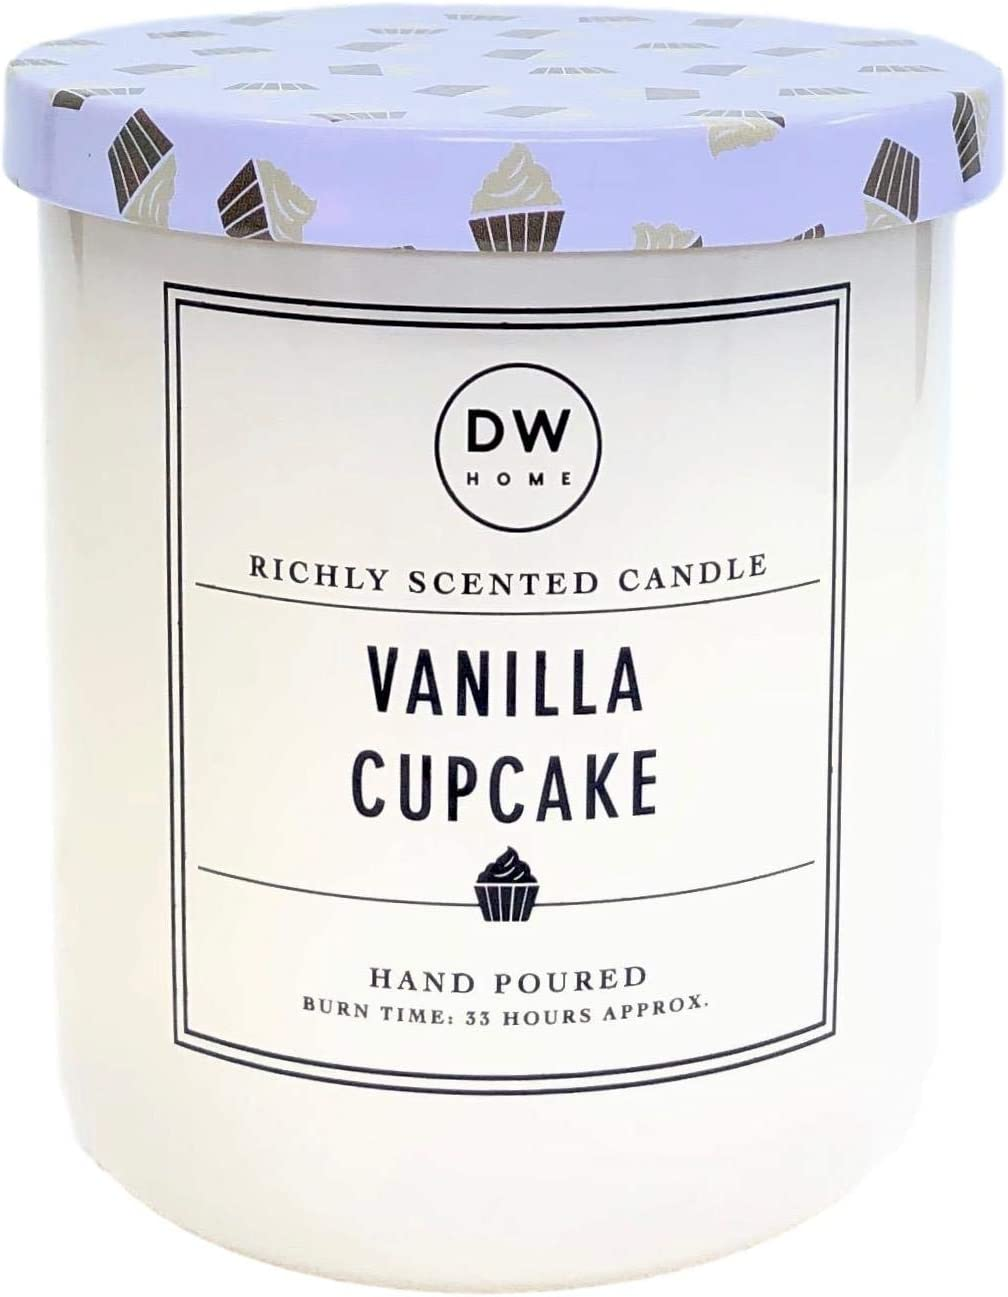 DW Home Vanilla Cupcake Scented Candle